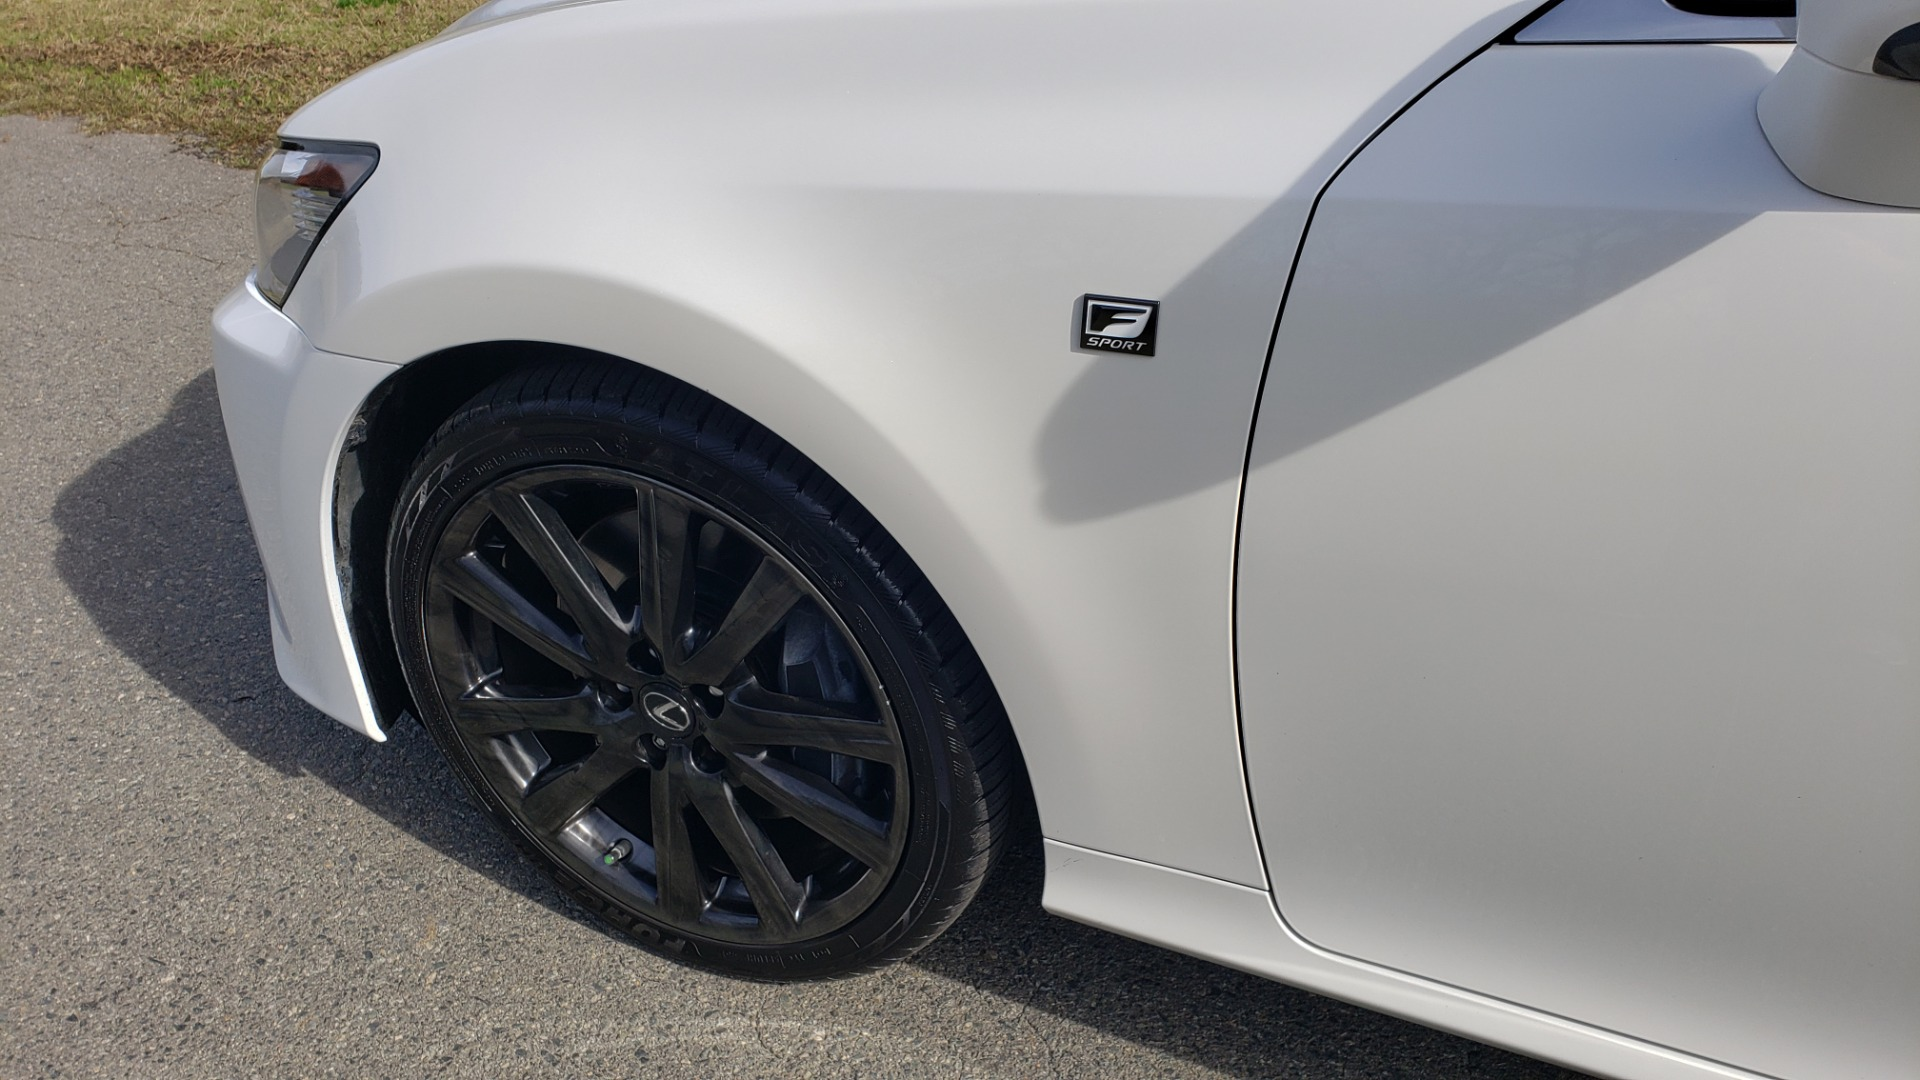 Used 2013 Lexus GS 350 F-SPORT / NAV / SUNROOF / BSM / PRK ASST / REARVIEW for sale Sold at Formula Imports in Charlotte NC 28227 4